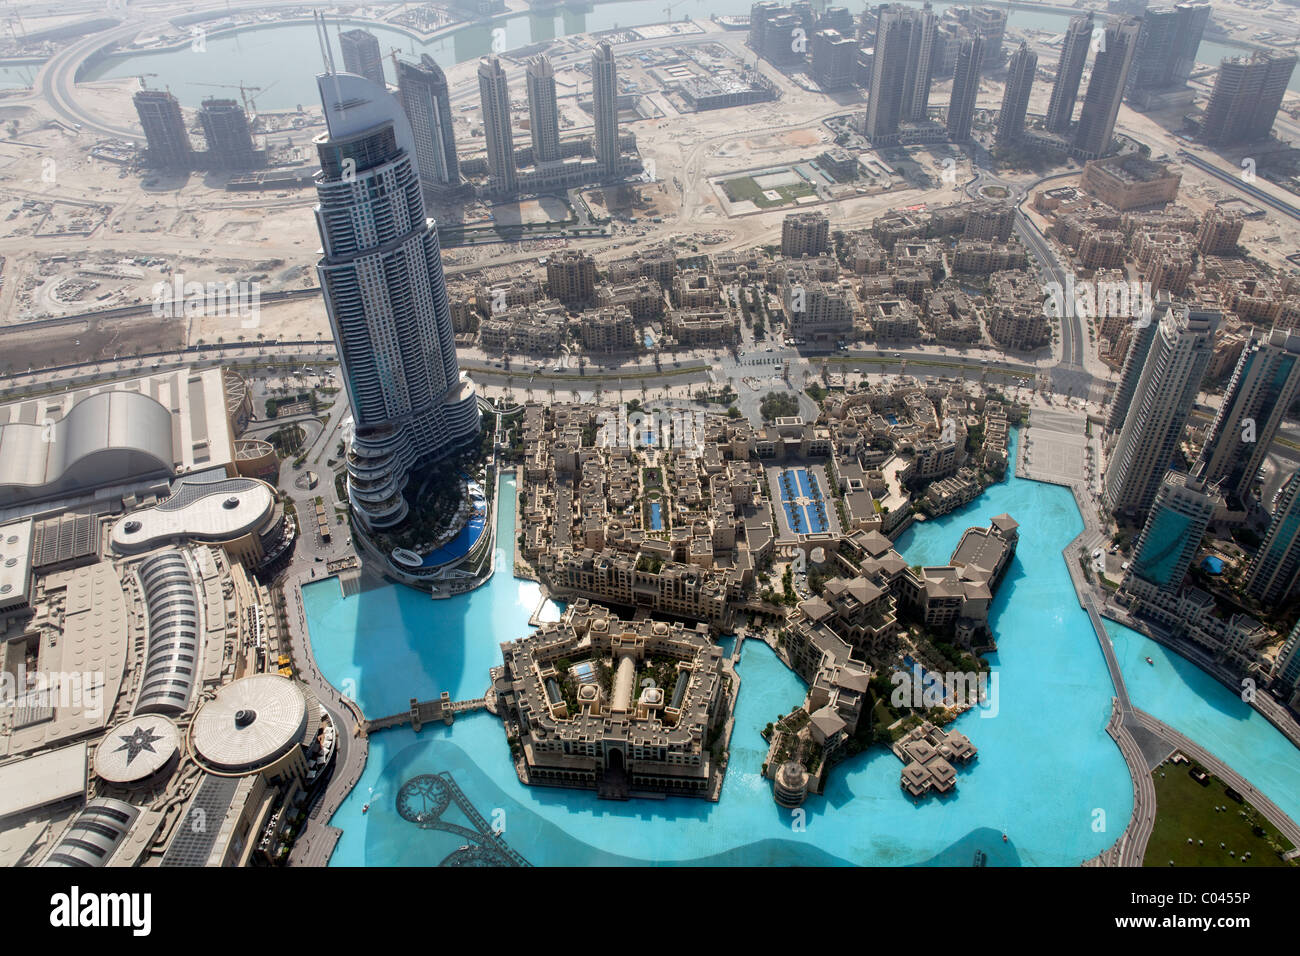 The Address Downtown Dubai Hotel And Residential Tower